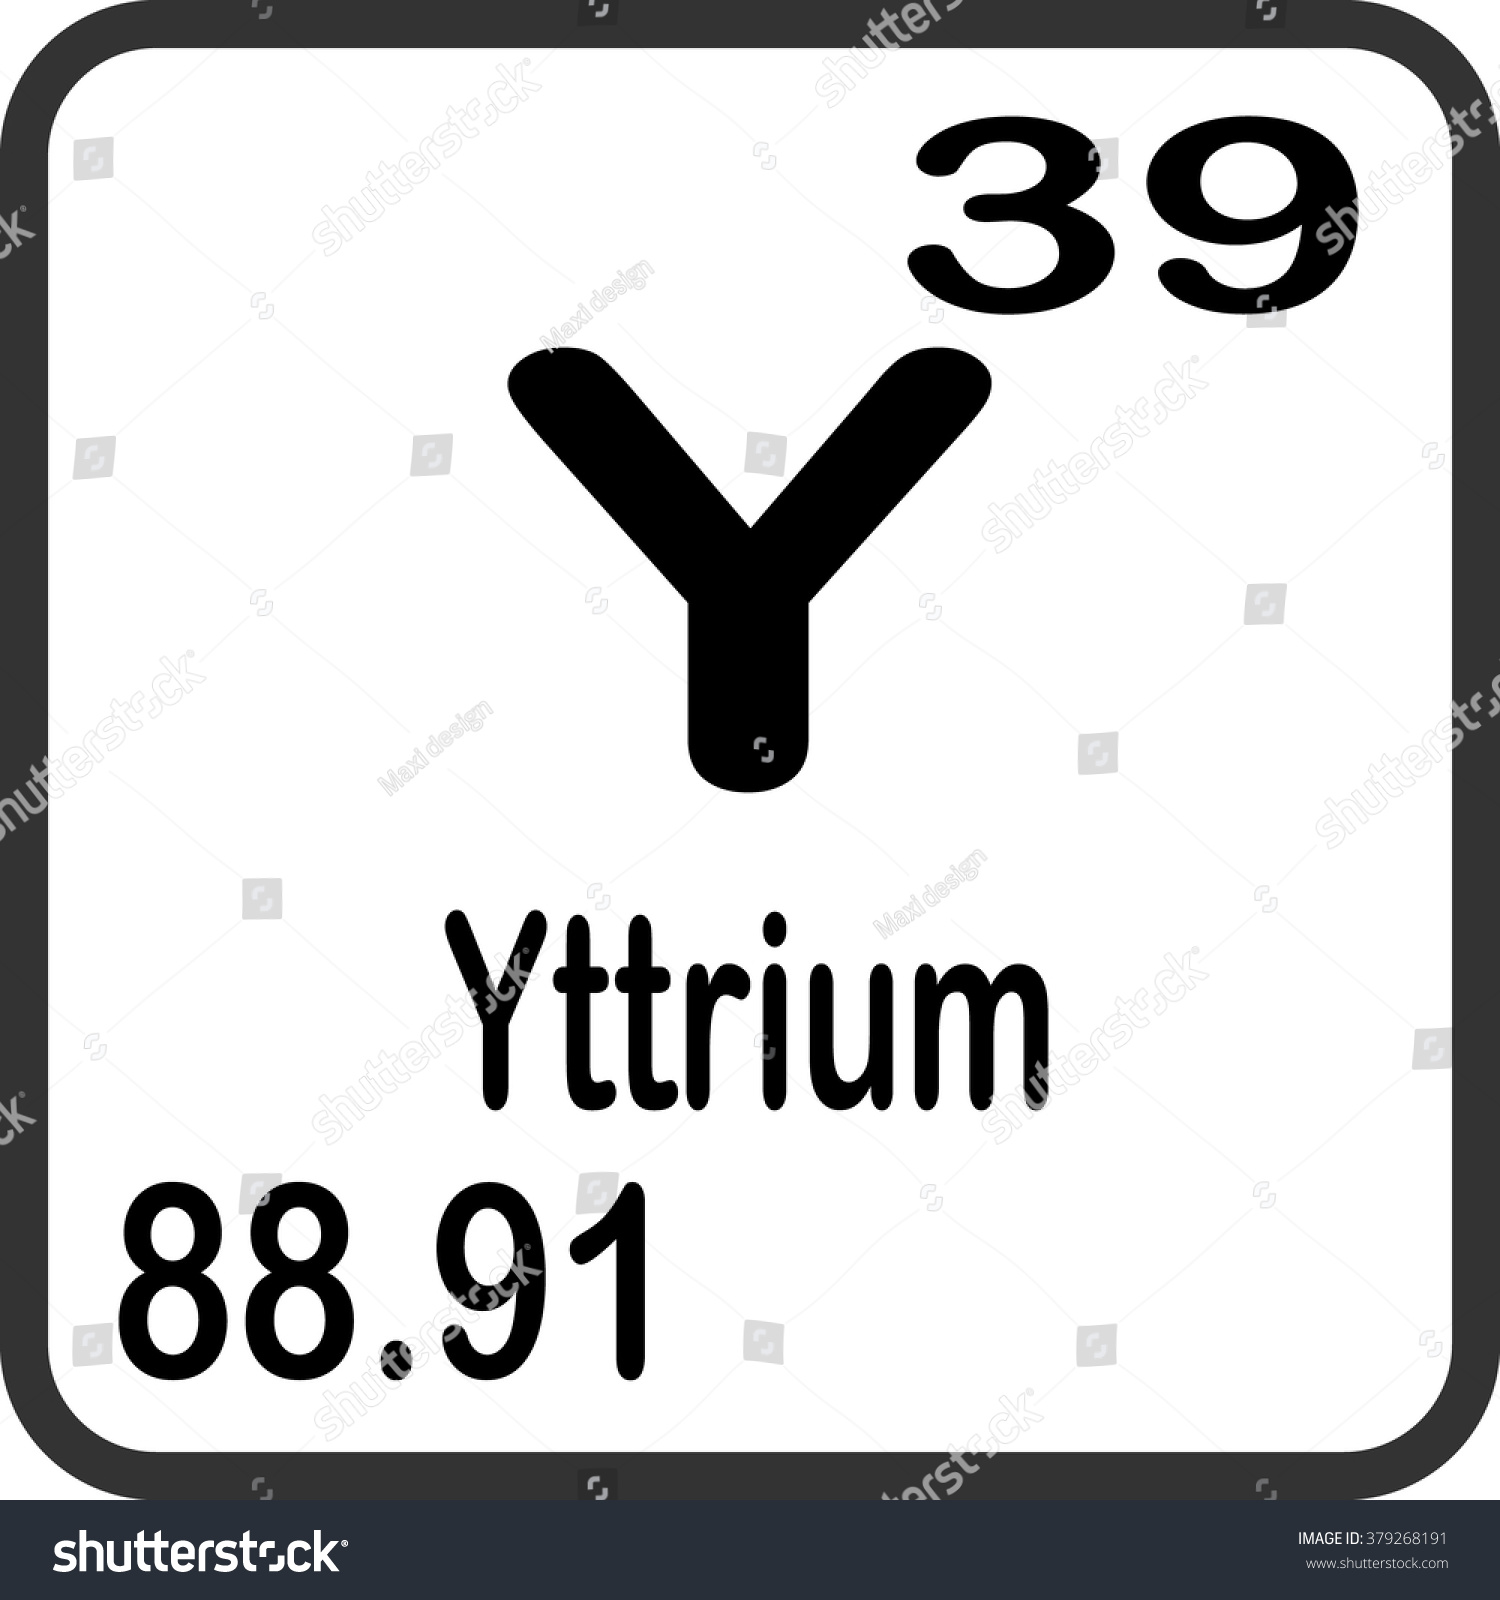 Yttrium symbol periodic table image collections periodic table yttrium symbol periodic table choice image periodic table images yttrium symbol periodic table images periodic table gamestrikefo Image collections